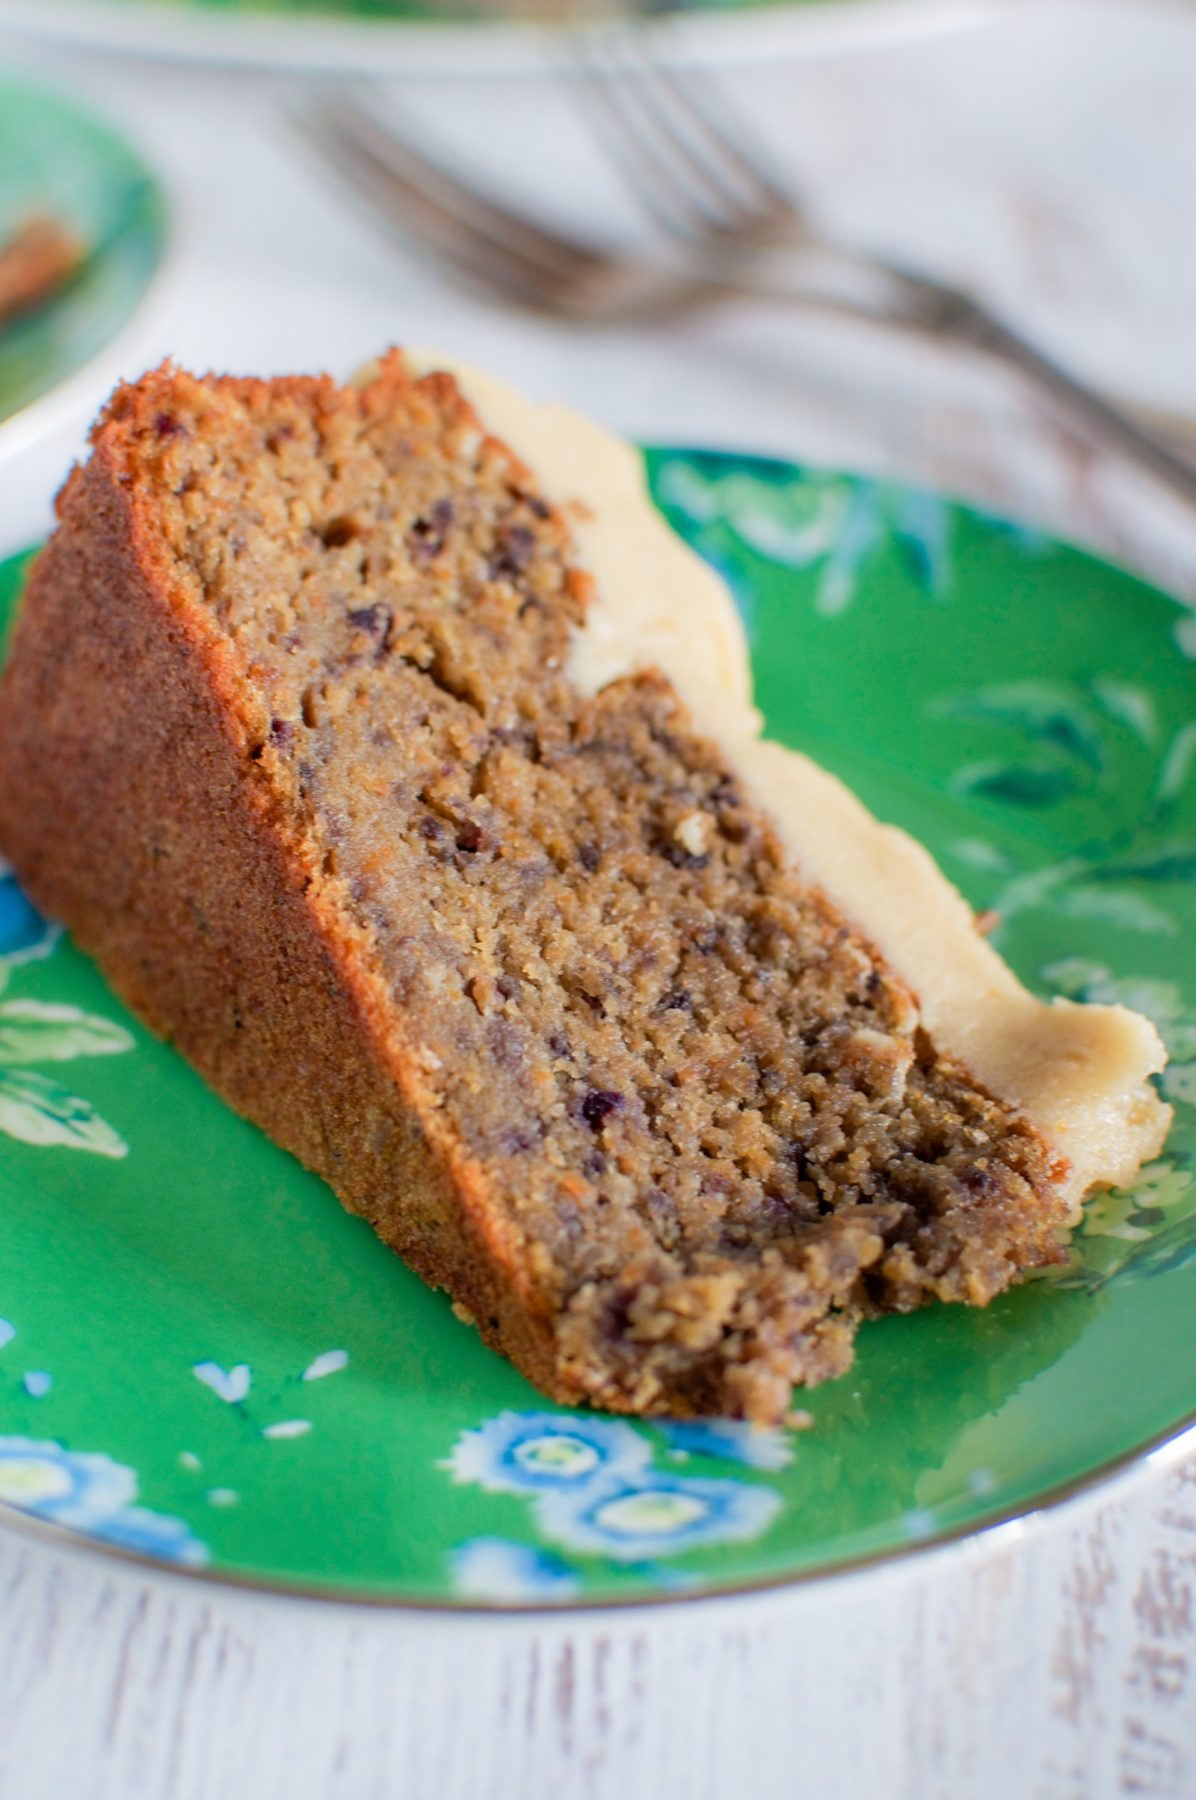 Carrot And Banana Cake With Macadamia Icing Claire K